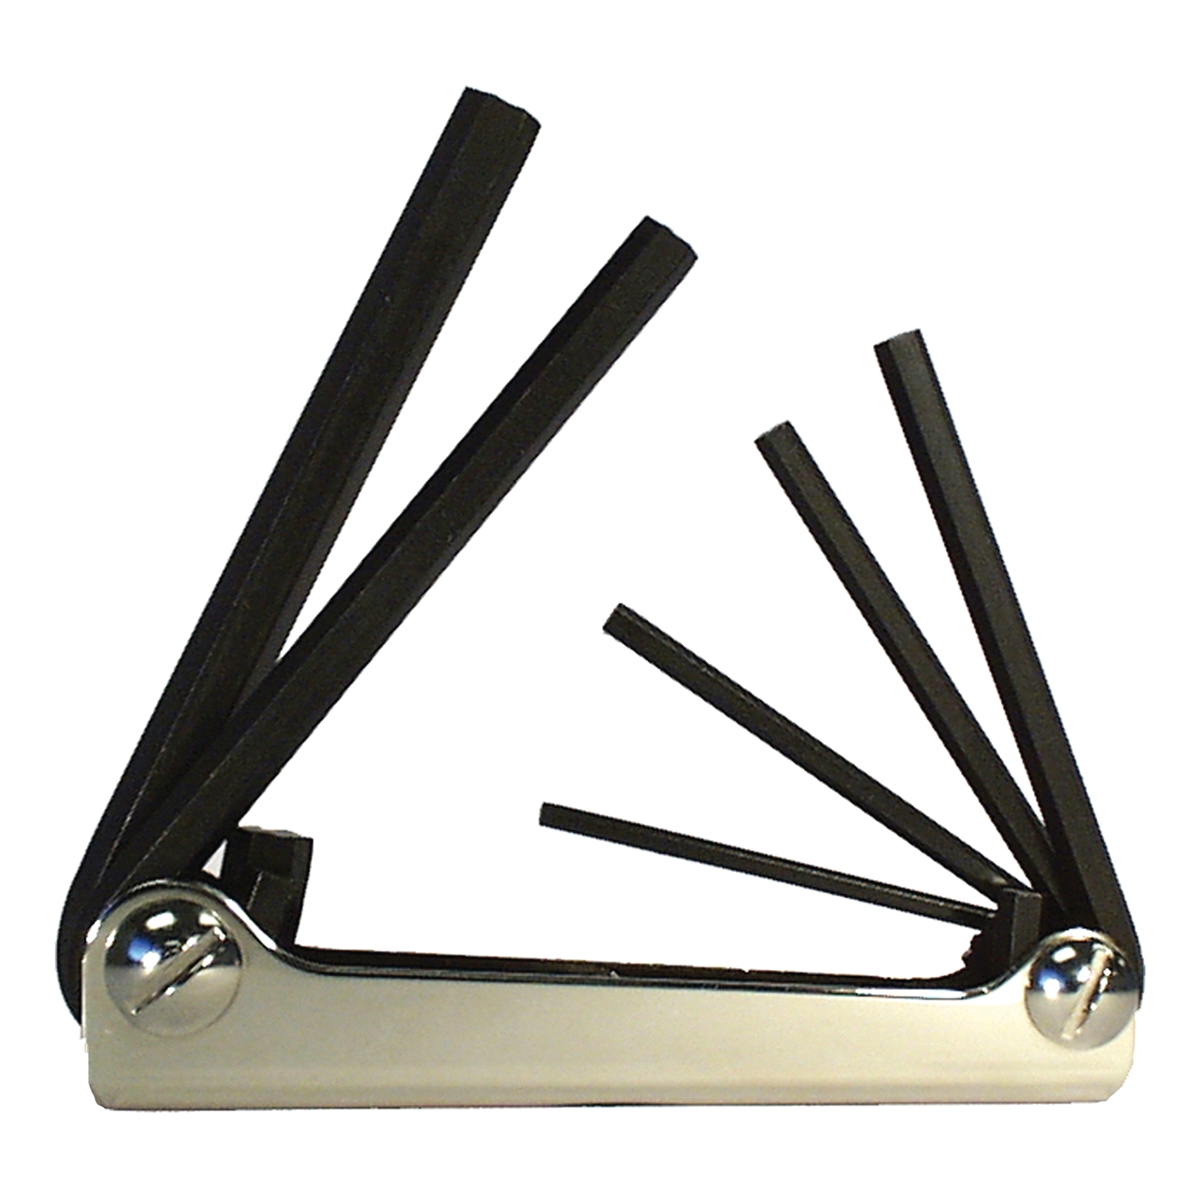 5Pc. Metric Fold-Up Hex Key Set